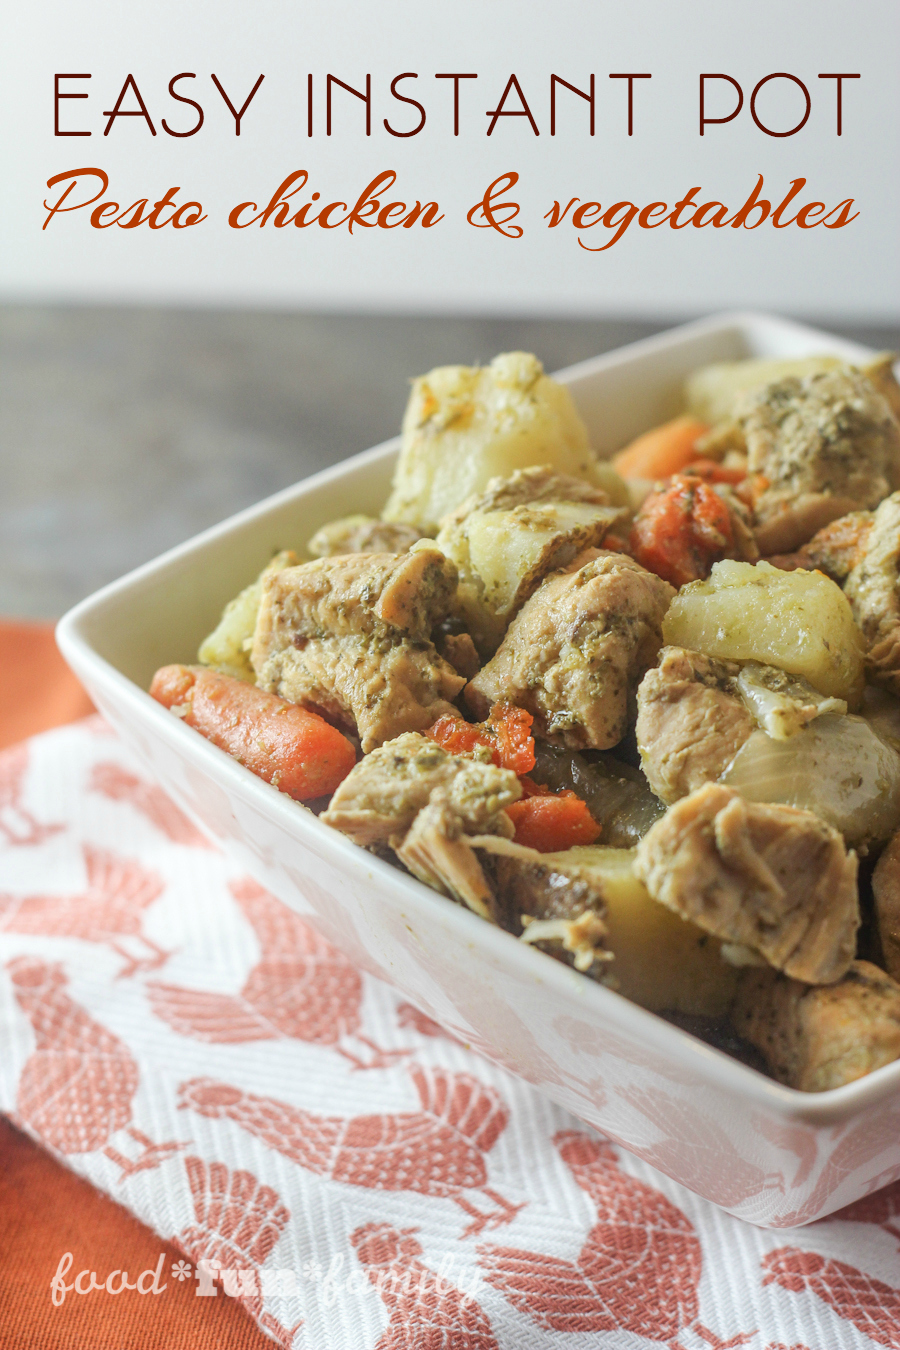 Easy pesto chicken and vegetables from Food Fun Family